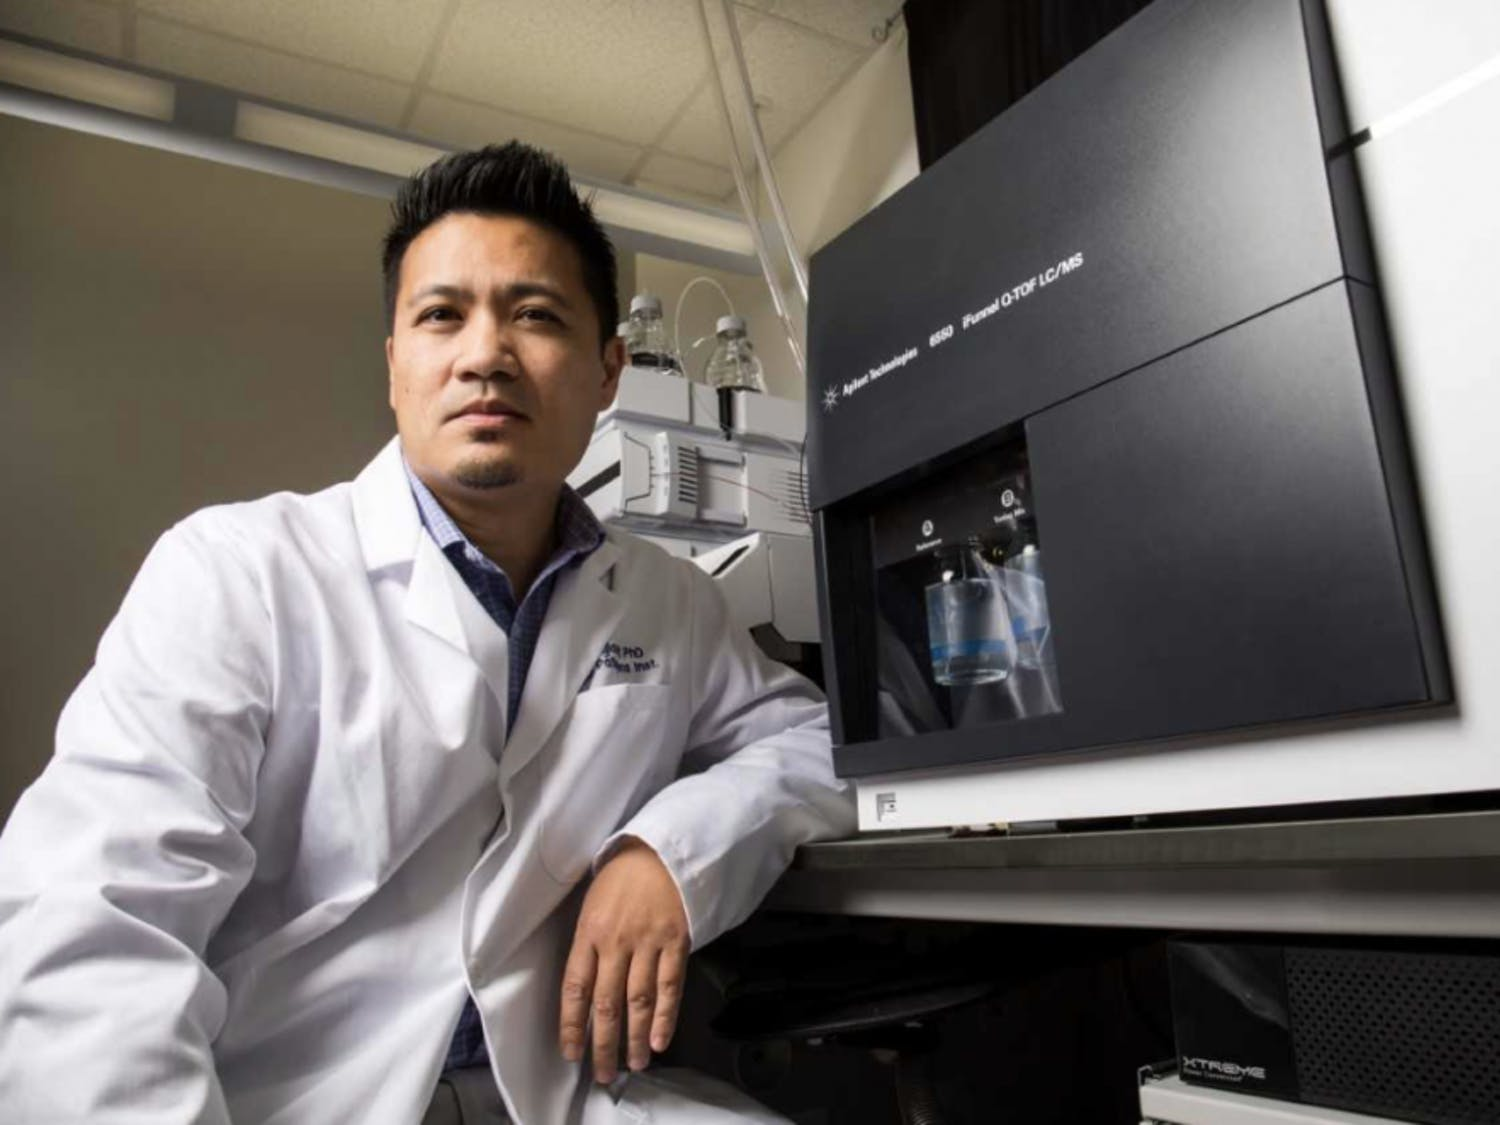 Rhoel Dinglasan, UF associate professor of infectious diseases and leader of the project which developed the Saliva-based Malaria Asymptomatic Asexual Rapid Test device, sits next to one of his agilent mass spectrometers which was used to gather data. Courtesy to The Alligator.